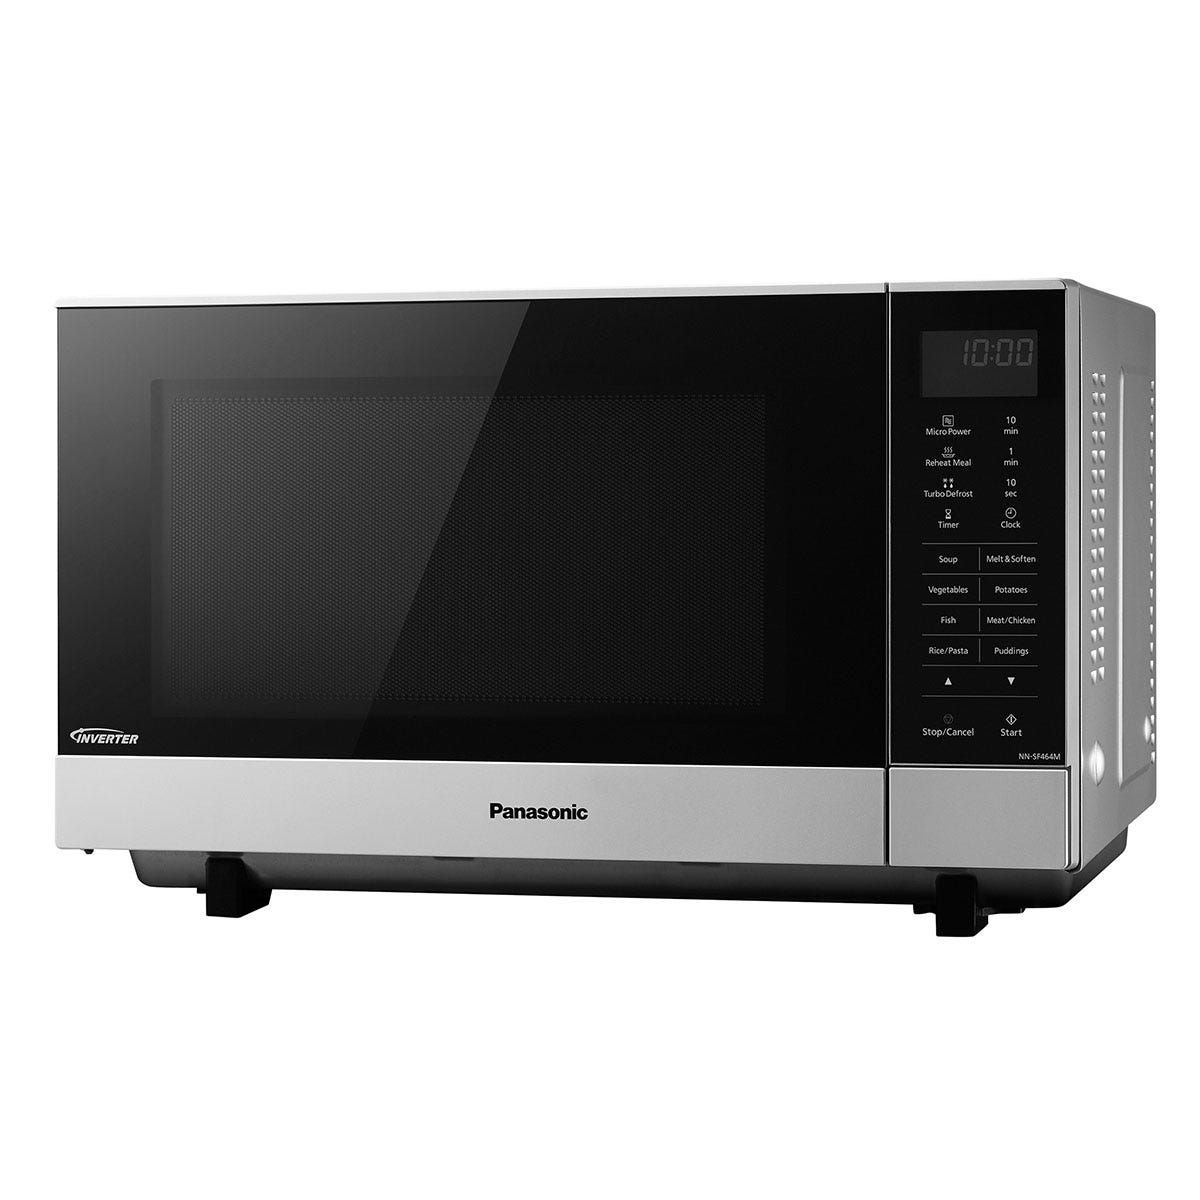 Panasonic NN-SF464MBPQ 27L 1000W Flatbed Digital Solo Microwave - Stainless Steel